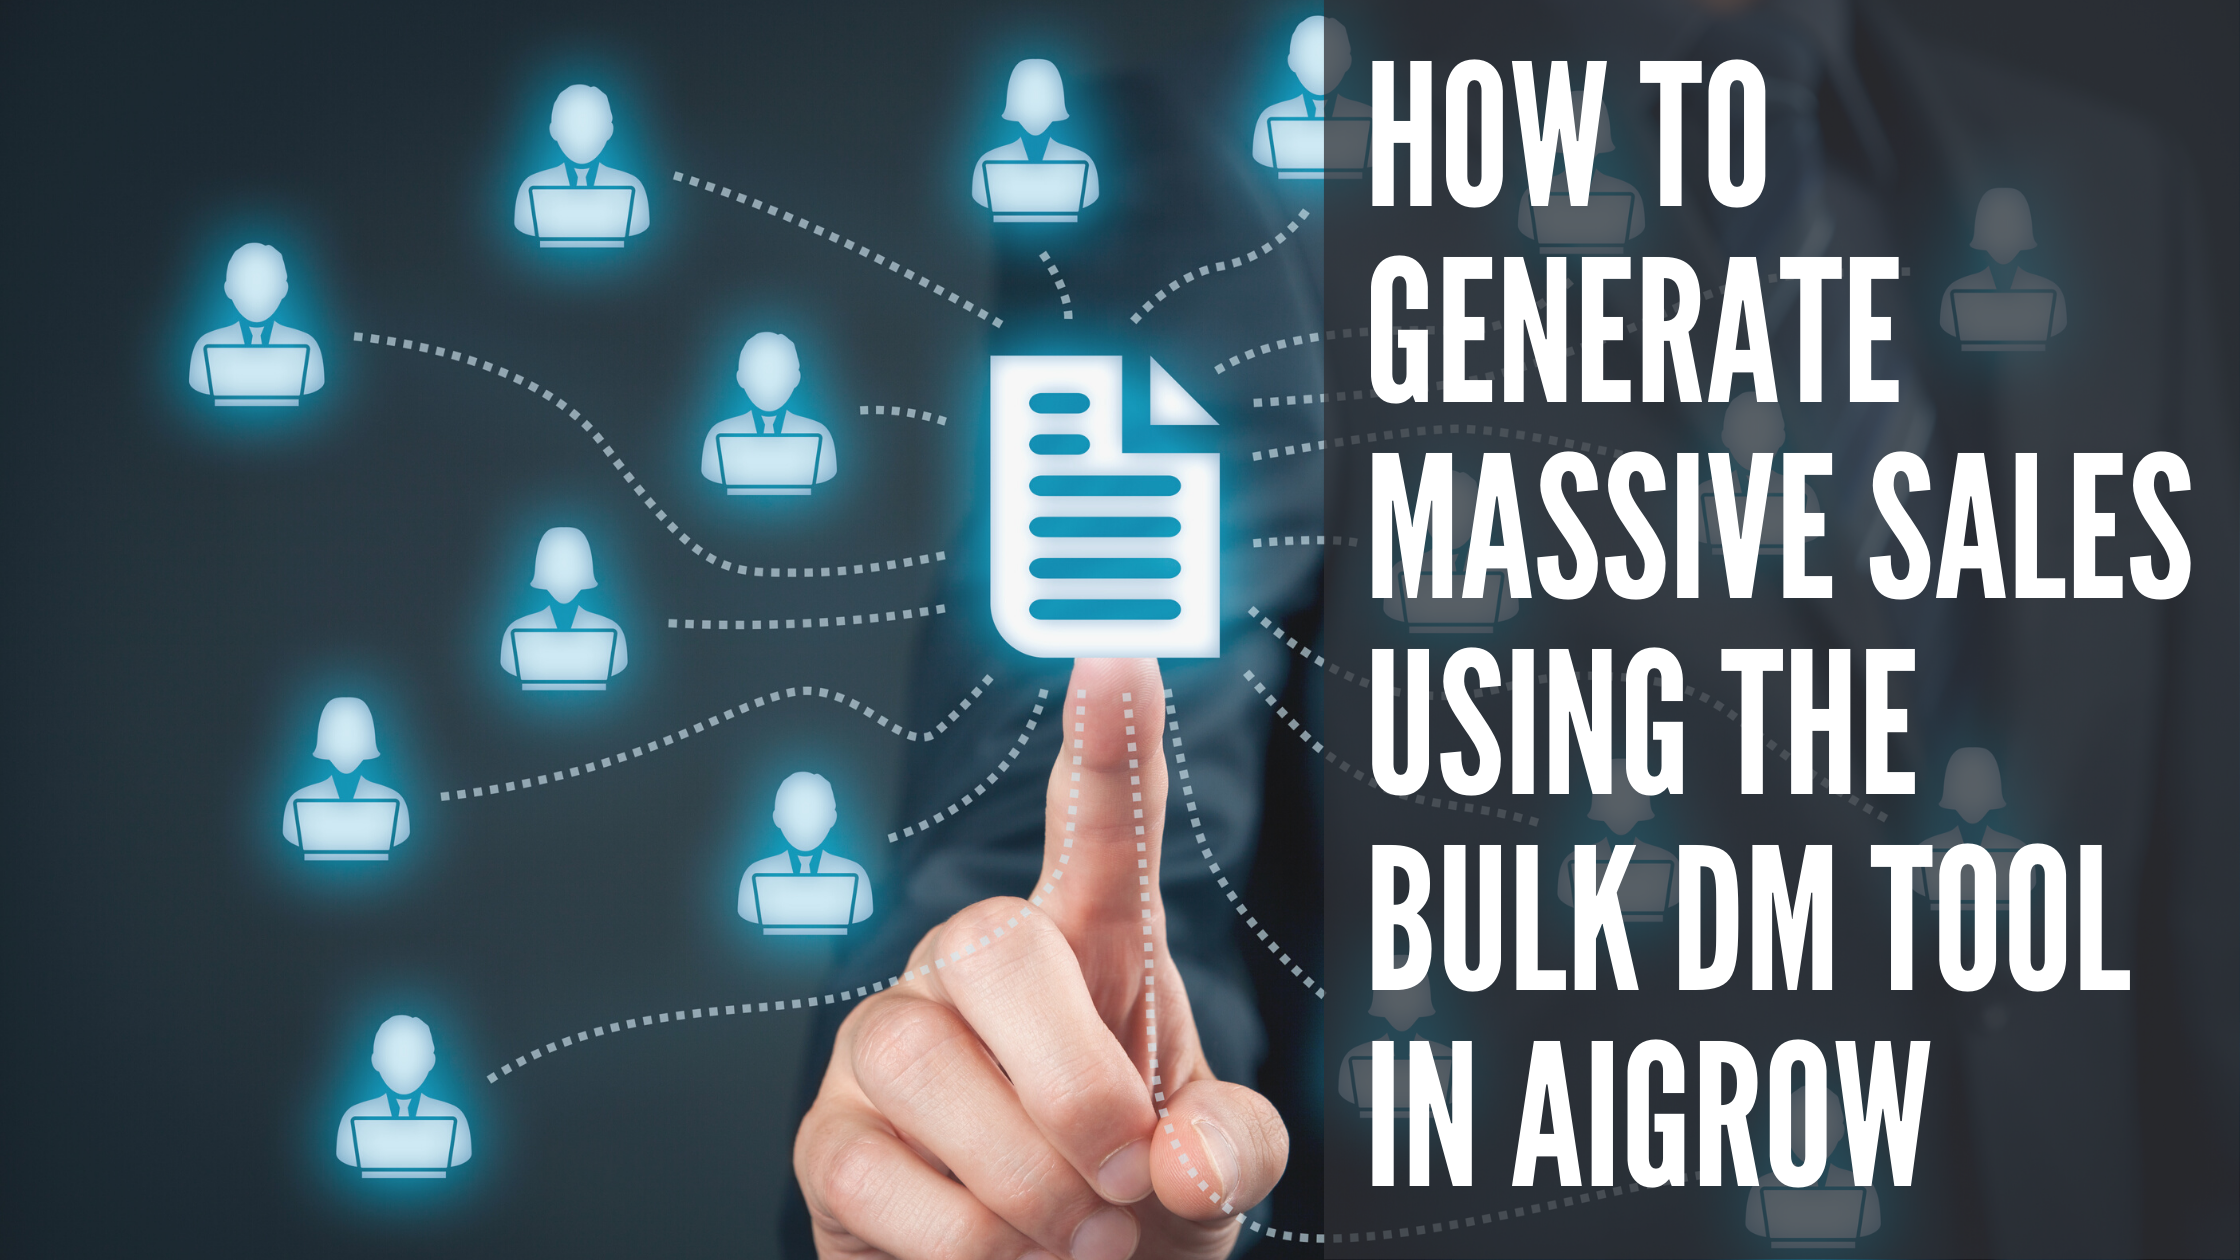 How to Generate Massive Sales Using the Bulk DM Tool in AiGrow